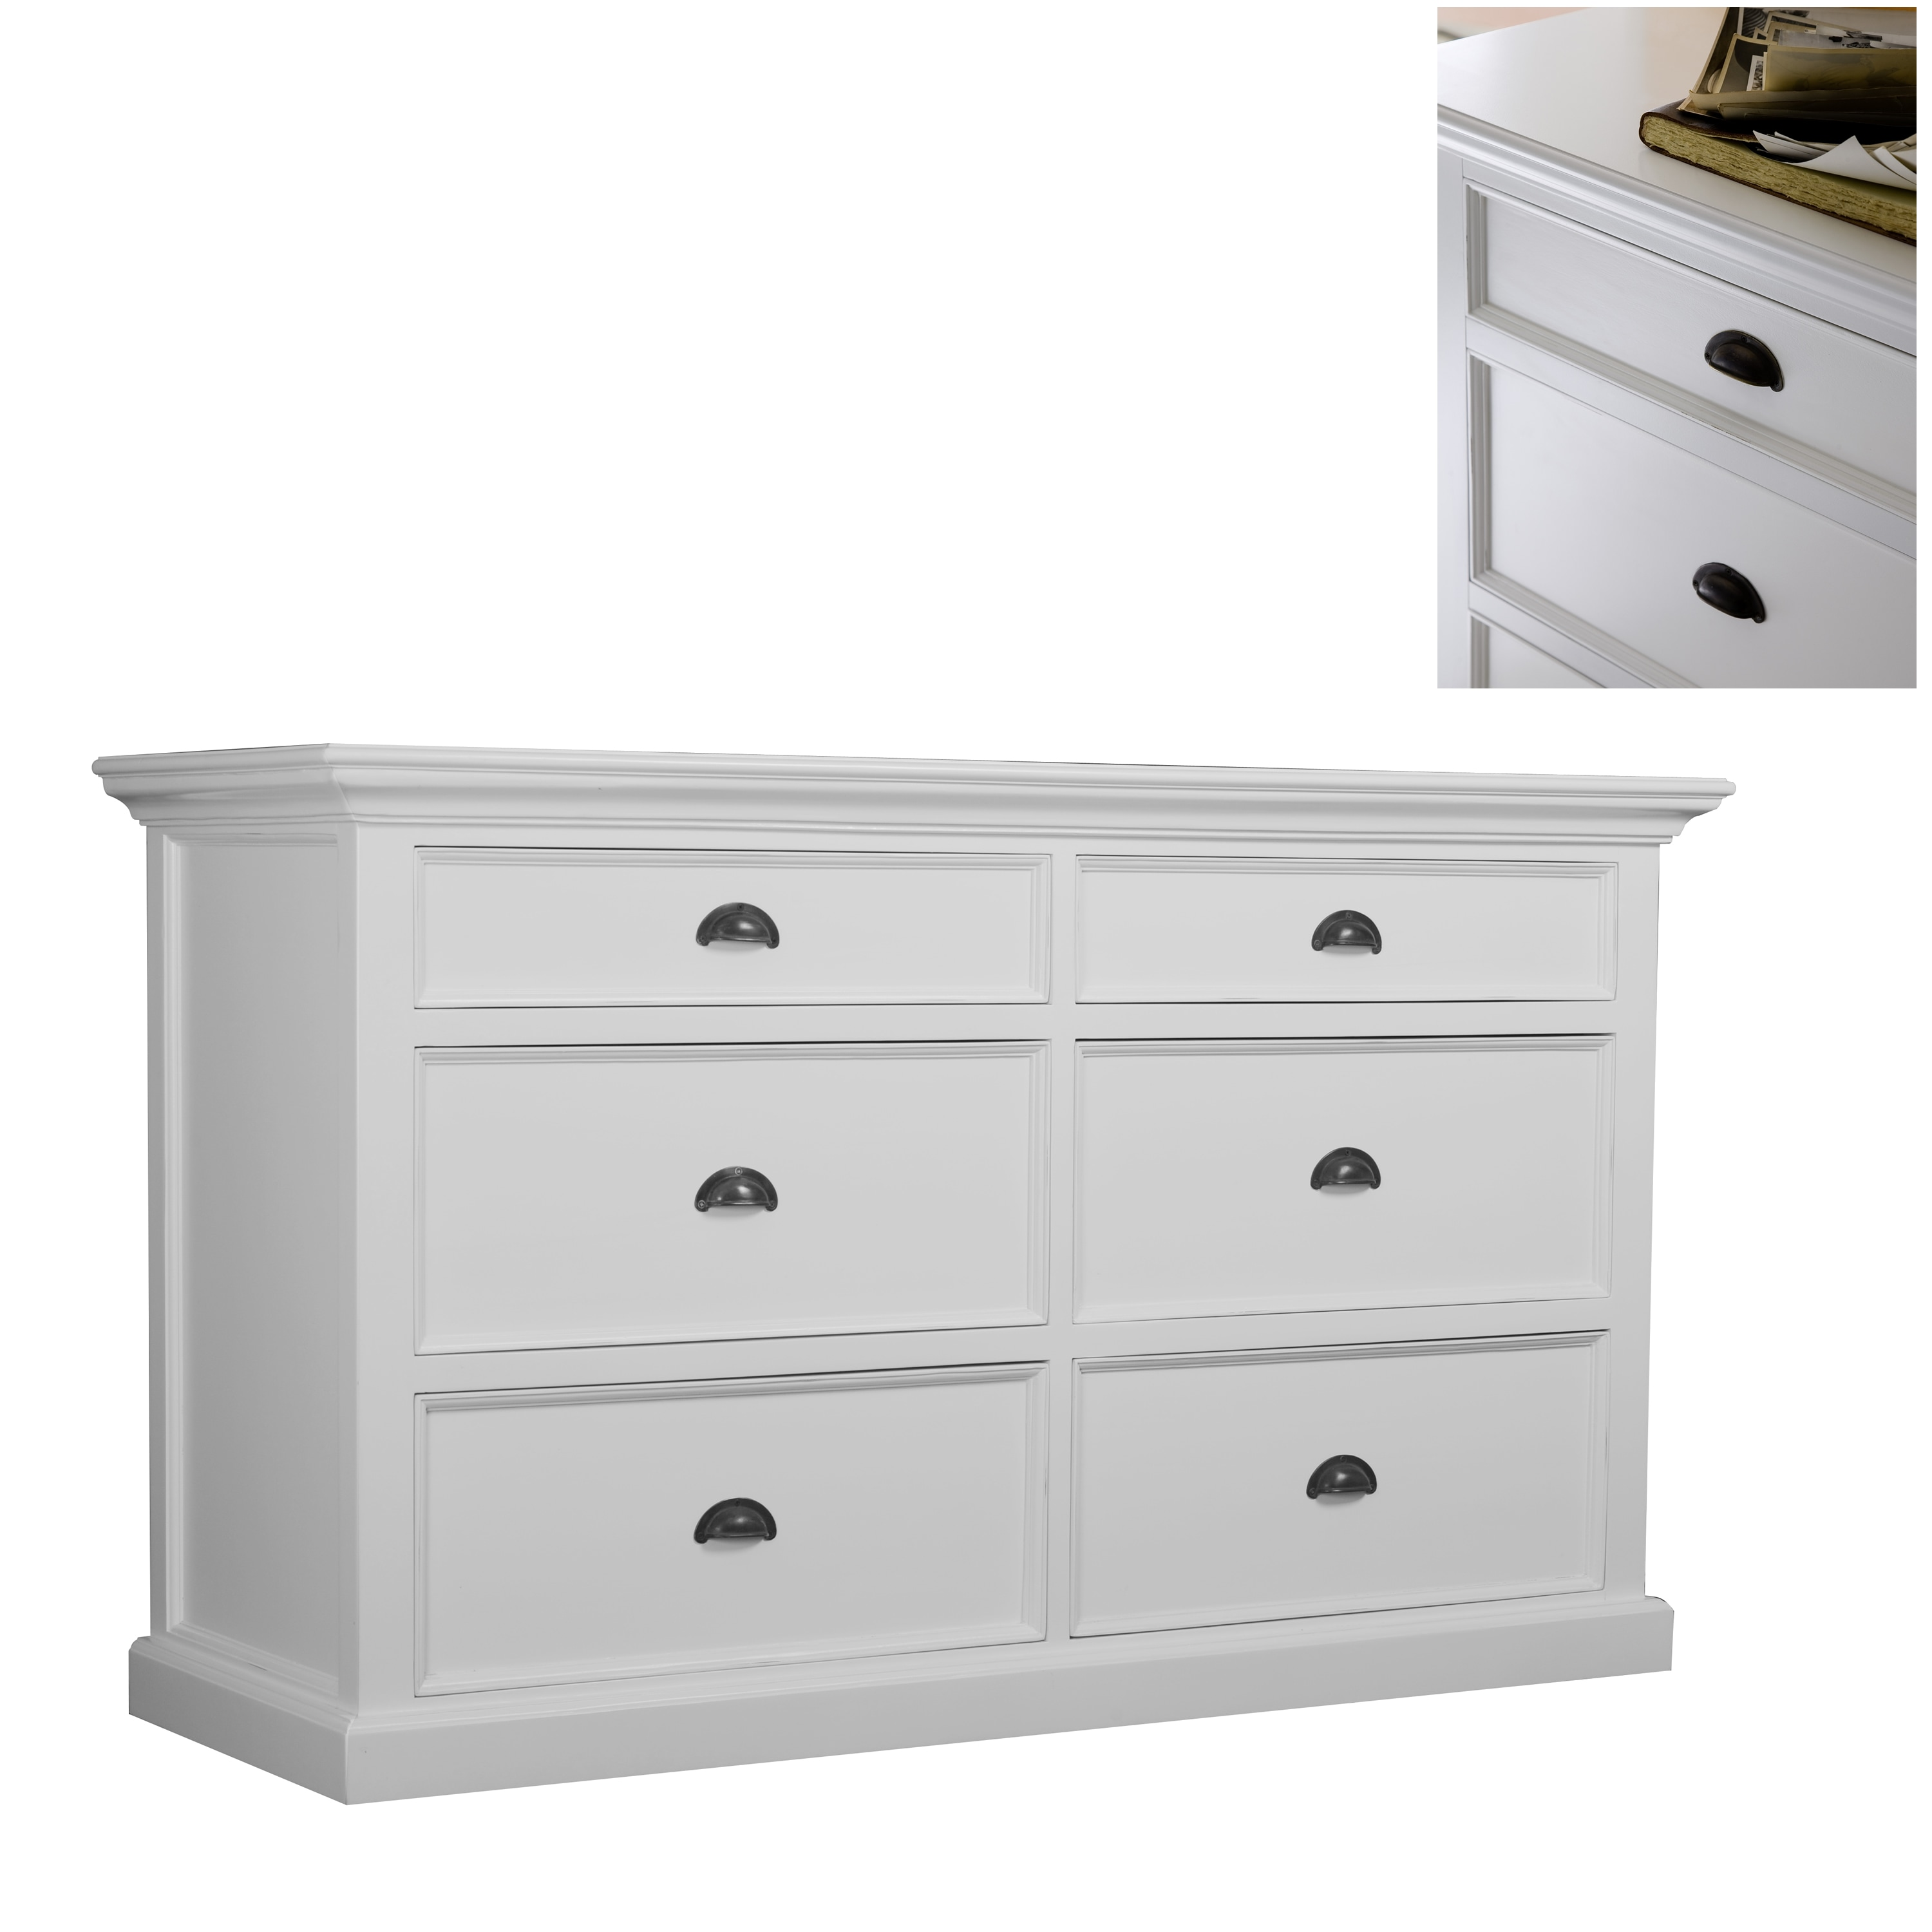 Interior White 6 Drawer Dresser